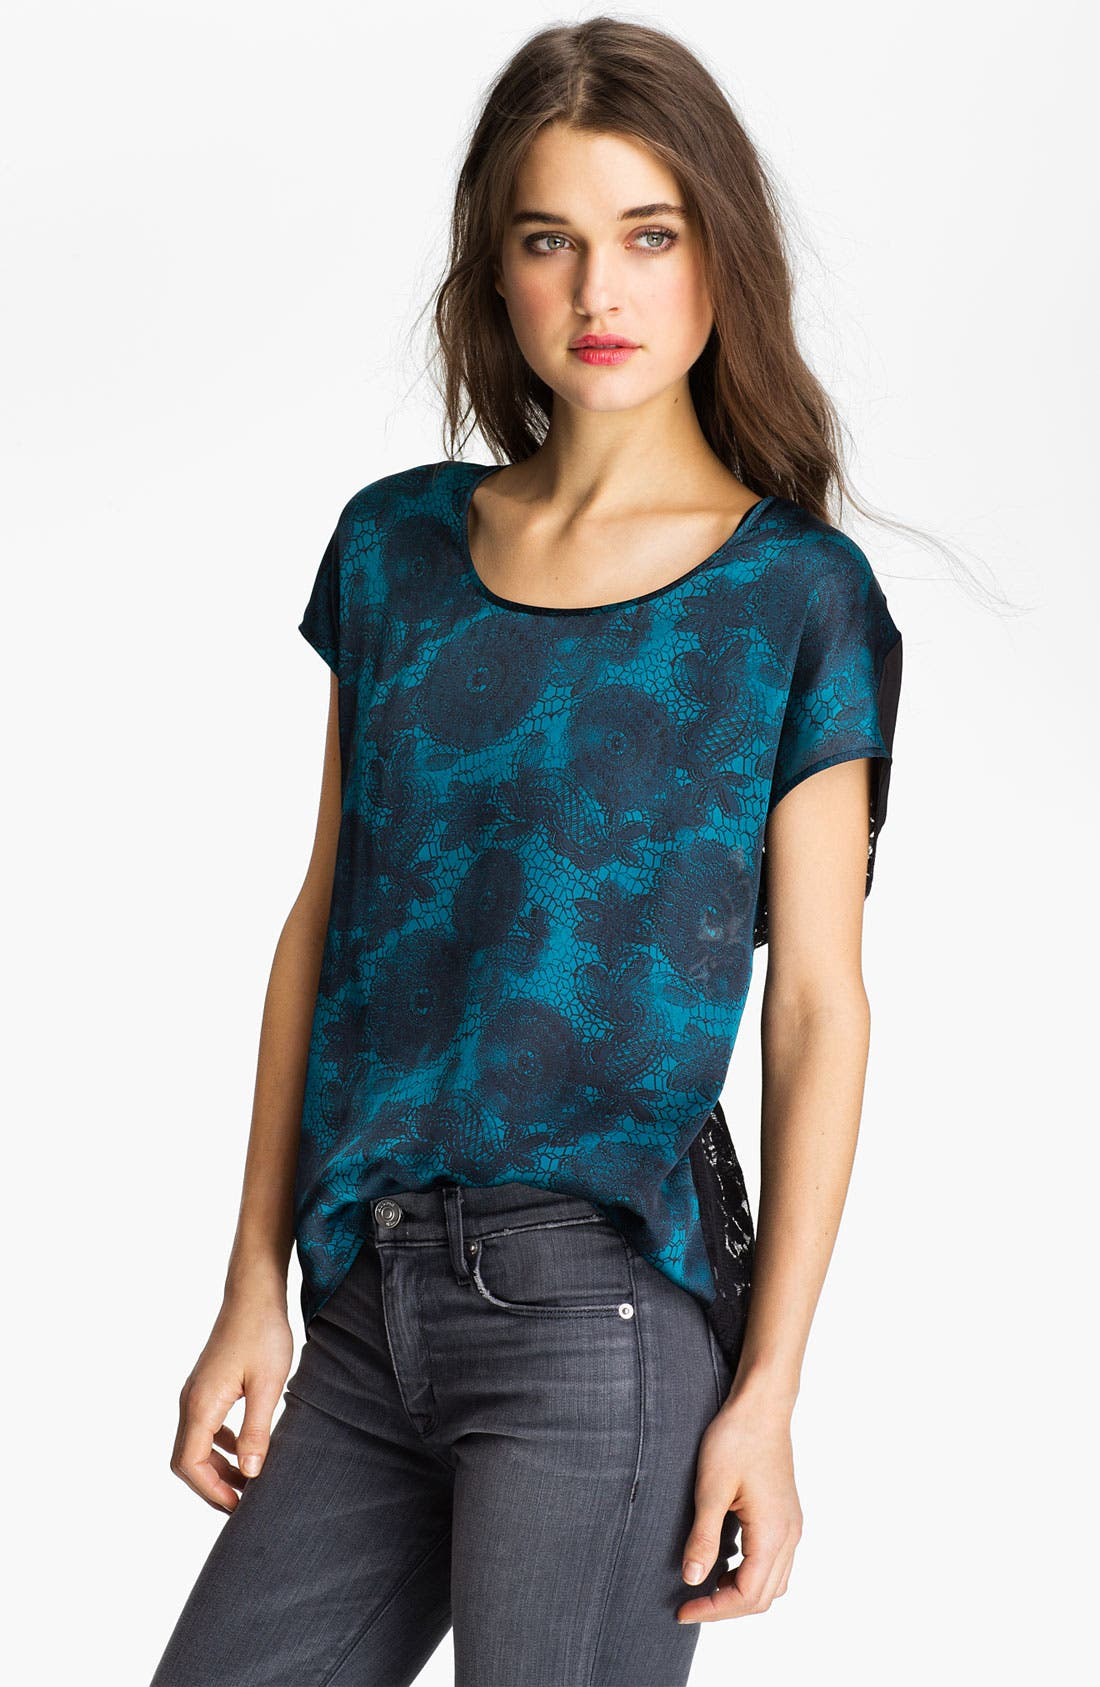 Alternate Image 1 Selected - Hinge® Mixed Media Lace Top